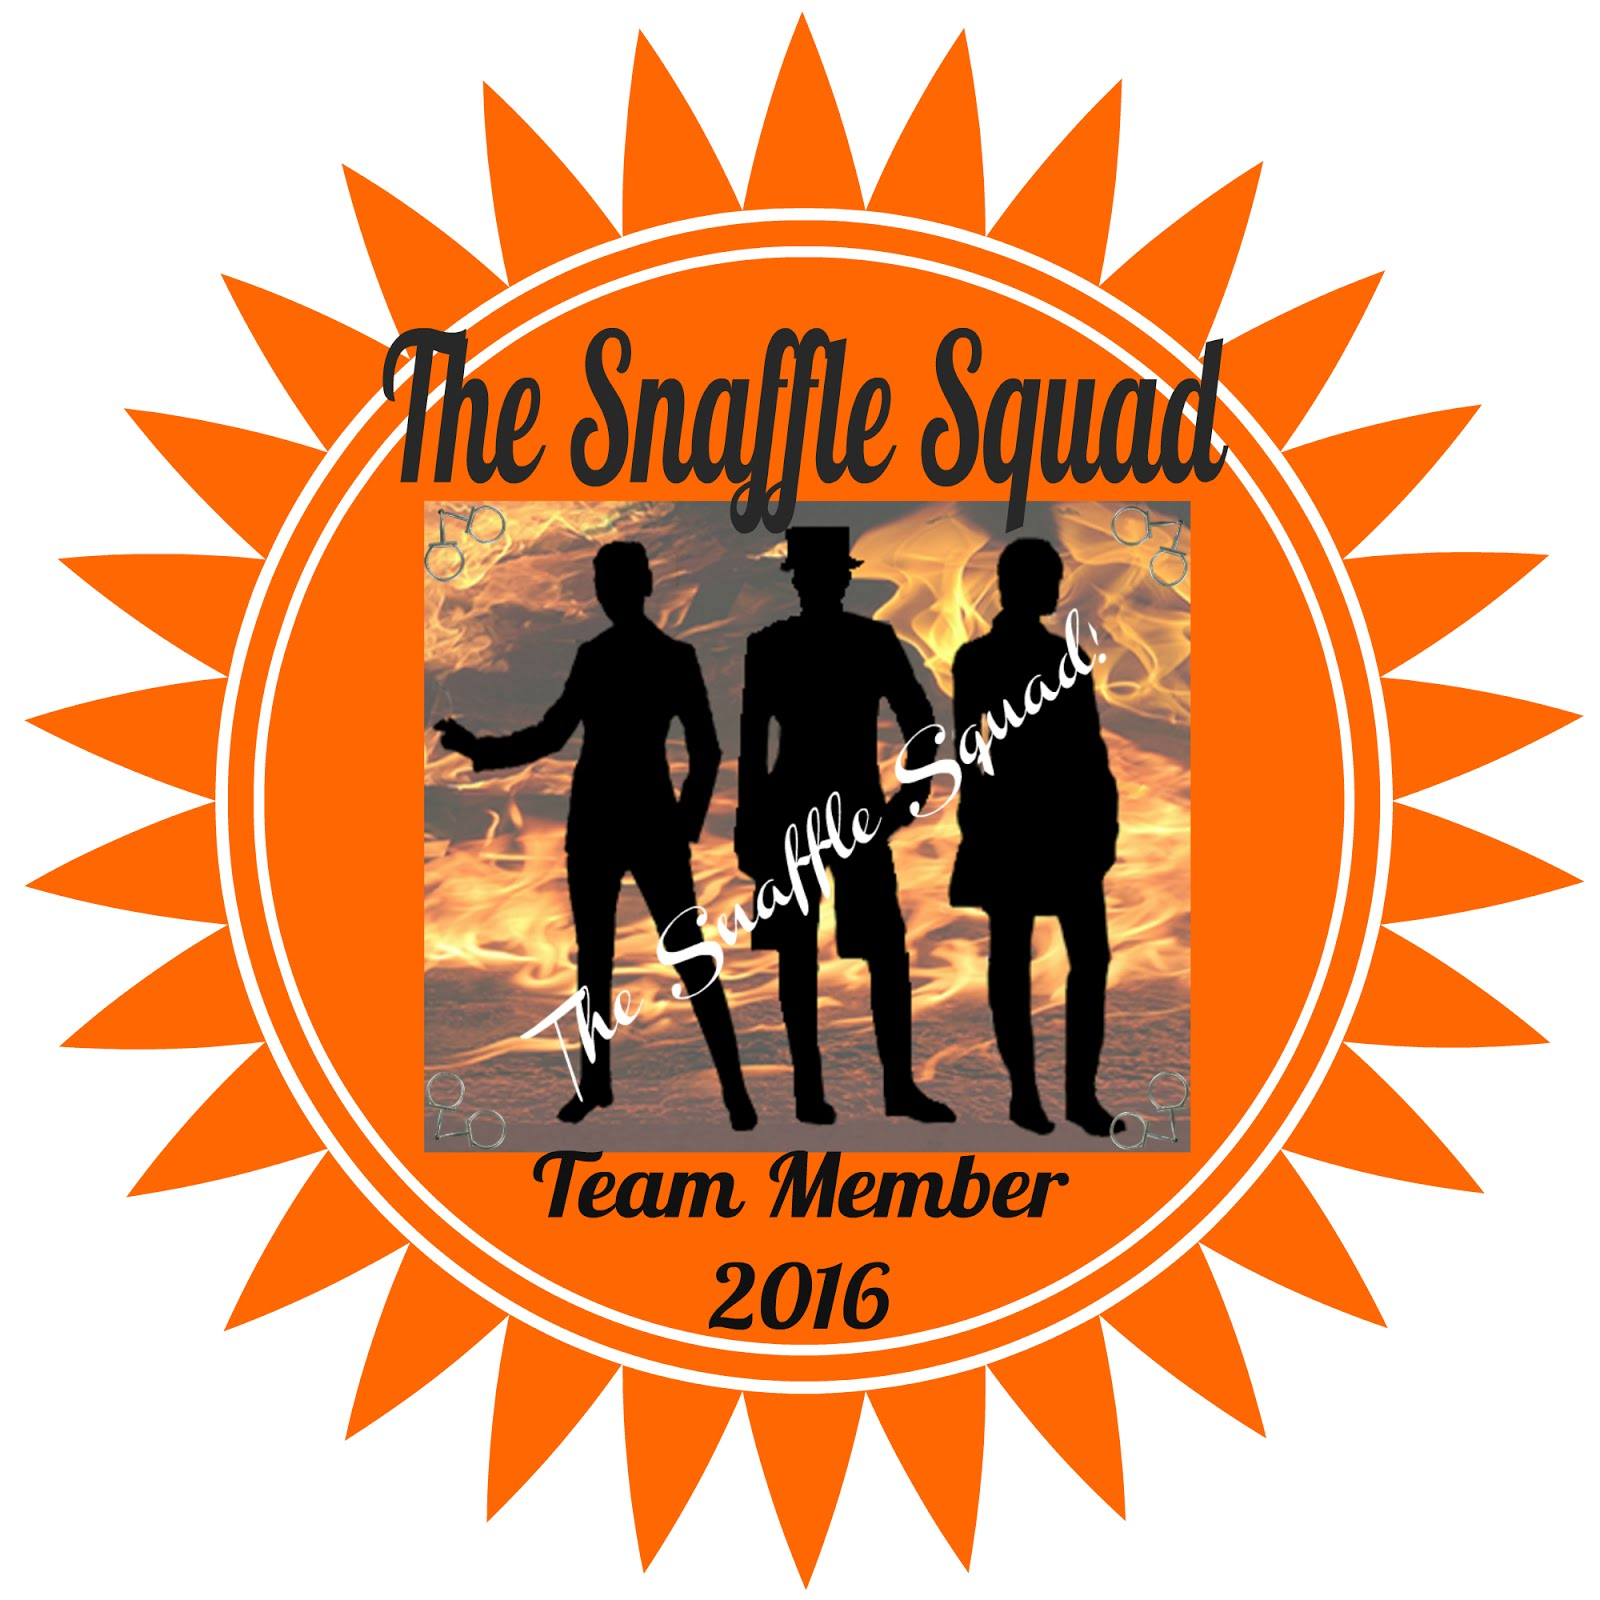 The Snaffle Squad